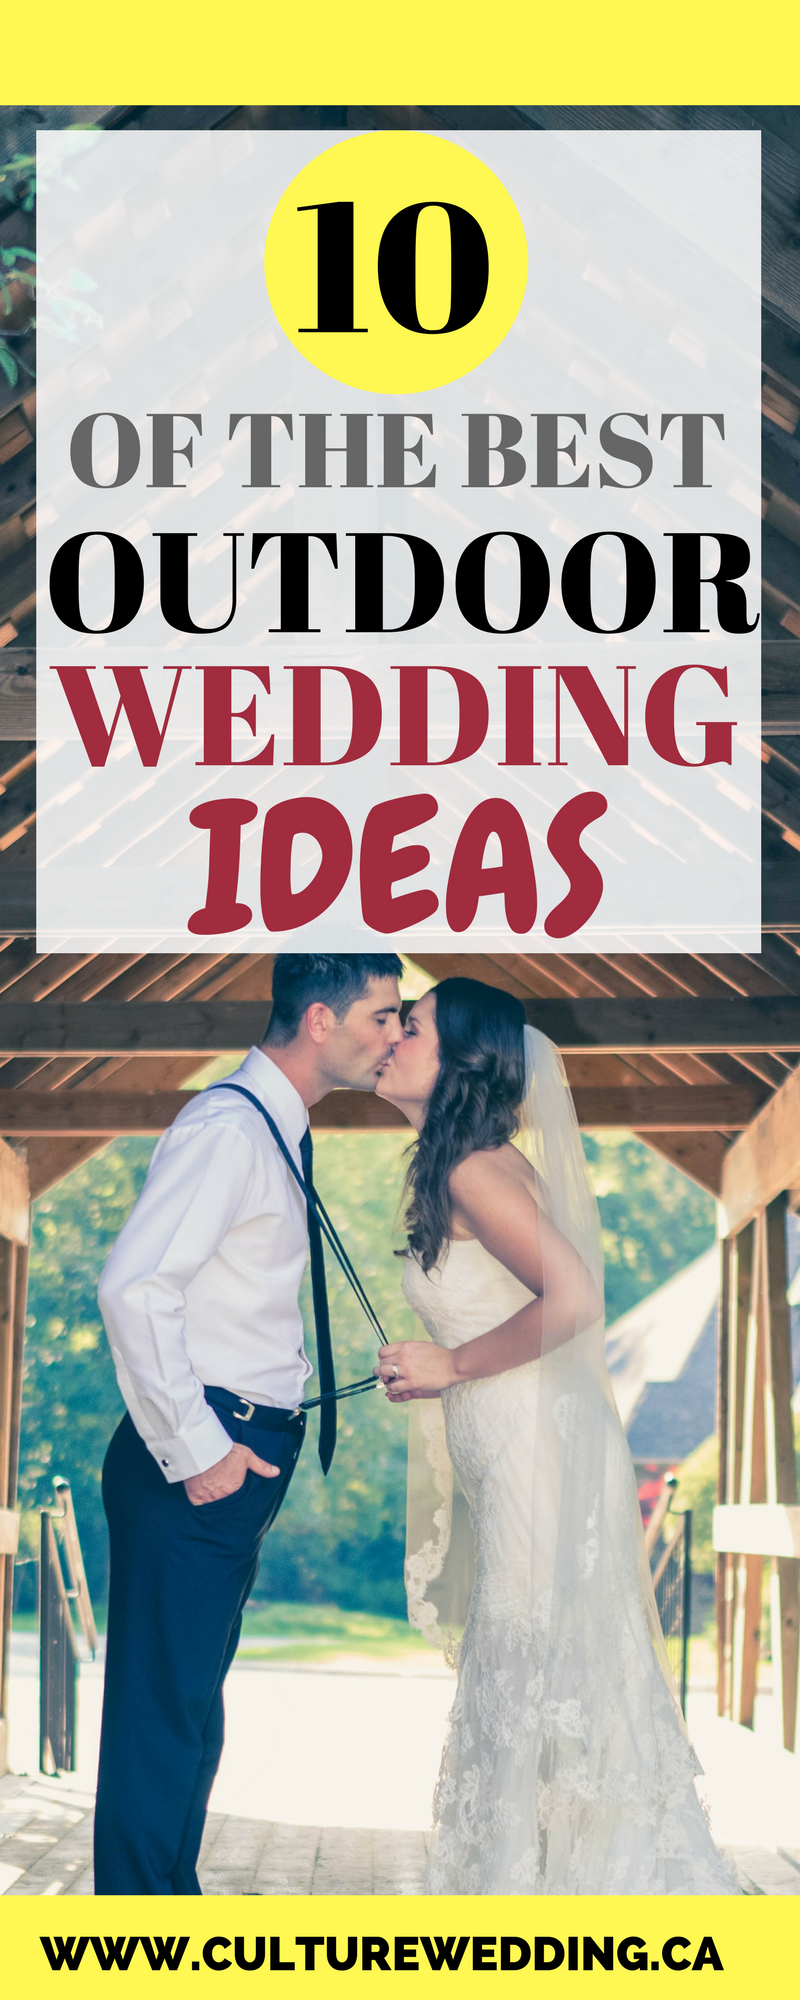 10 of the best Outdoor Wedding ideas from Pinterest. Outdoor wedding ideas on a Budget. How to decorate an outdoor wedding. Wedding decor ideas. Outdoor wedding inspiration. Elegant wedding decor. Rustic outdoor wedding decorations. Wedding decoration ideas. Wedding planning ideas. Best outdoor wedding ideas on Pinterest. How to plan an outdoor wedding. Wedding ideas decoration. Wedding decorations on a budget. Wedding reception on a budget.